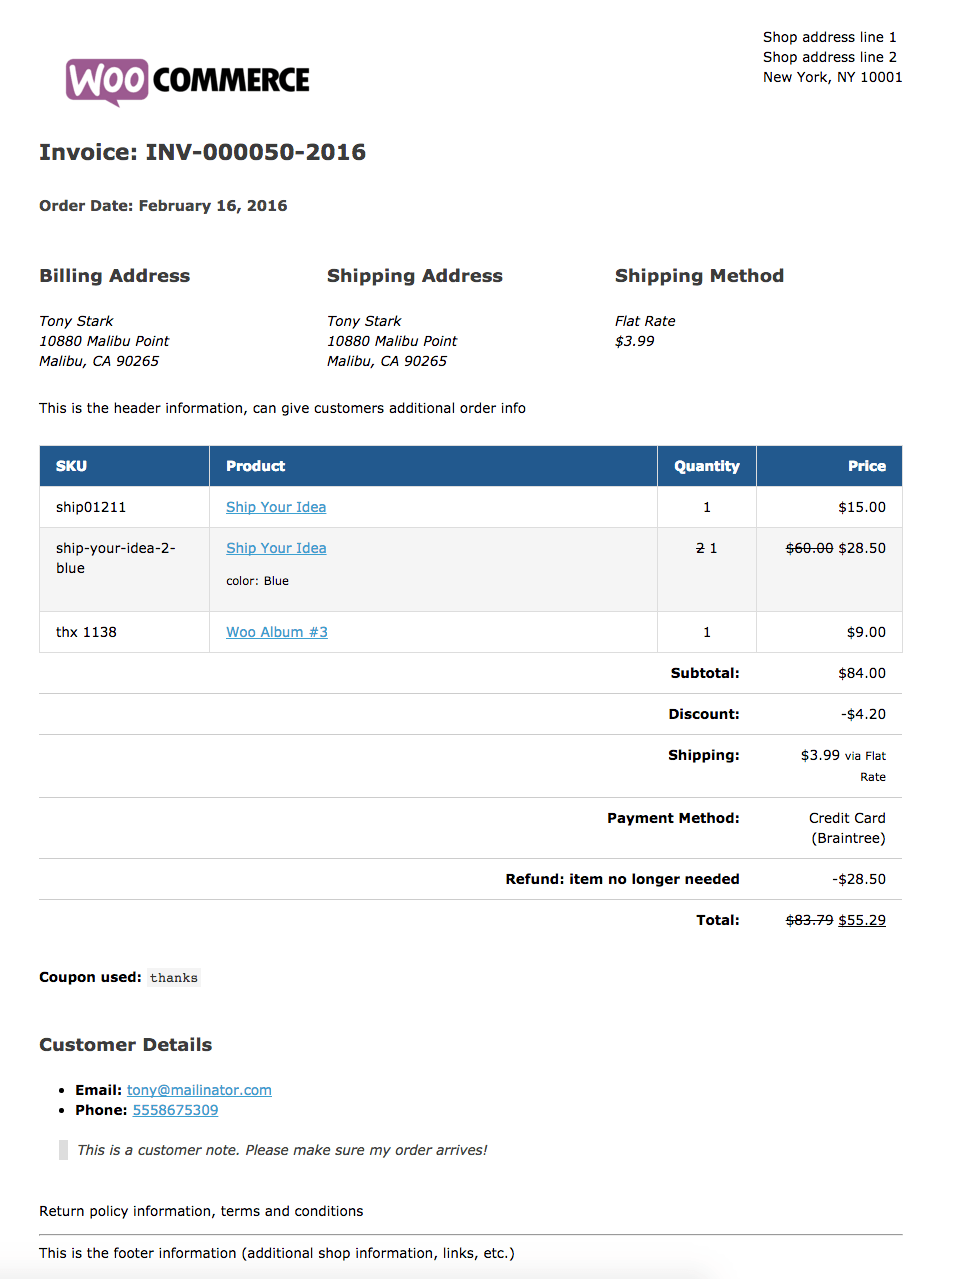 Offtheshelfus  Pleasing Woocommerce Print Invoices Amp Packing Lists  Woocommerce Docs With Great Sample Invoice With Astounding Receipts Printable Also Proforma Receipt In Addition Acknowledgement Receipt Format And How To Write A Car Receipt As Well As I Acknowledge The Receipt Of Your Email Additionally Lic Paid Receipt From Docswoocommercecom With Offtheshelfus  Great Woocommerce Print Invoices Amp Packing Lists  Woocommerce Docs With Astounding Sample Invoice And Pleasing Receipts Printable Also Proforma Receipt In Addition Acknowledgement Receipt Format From Docswoocommercecom